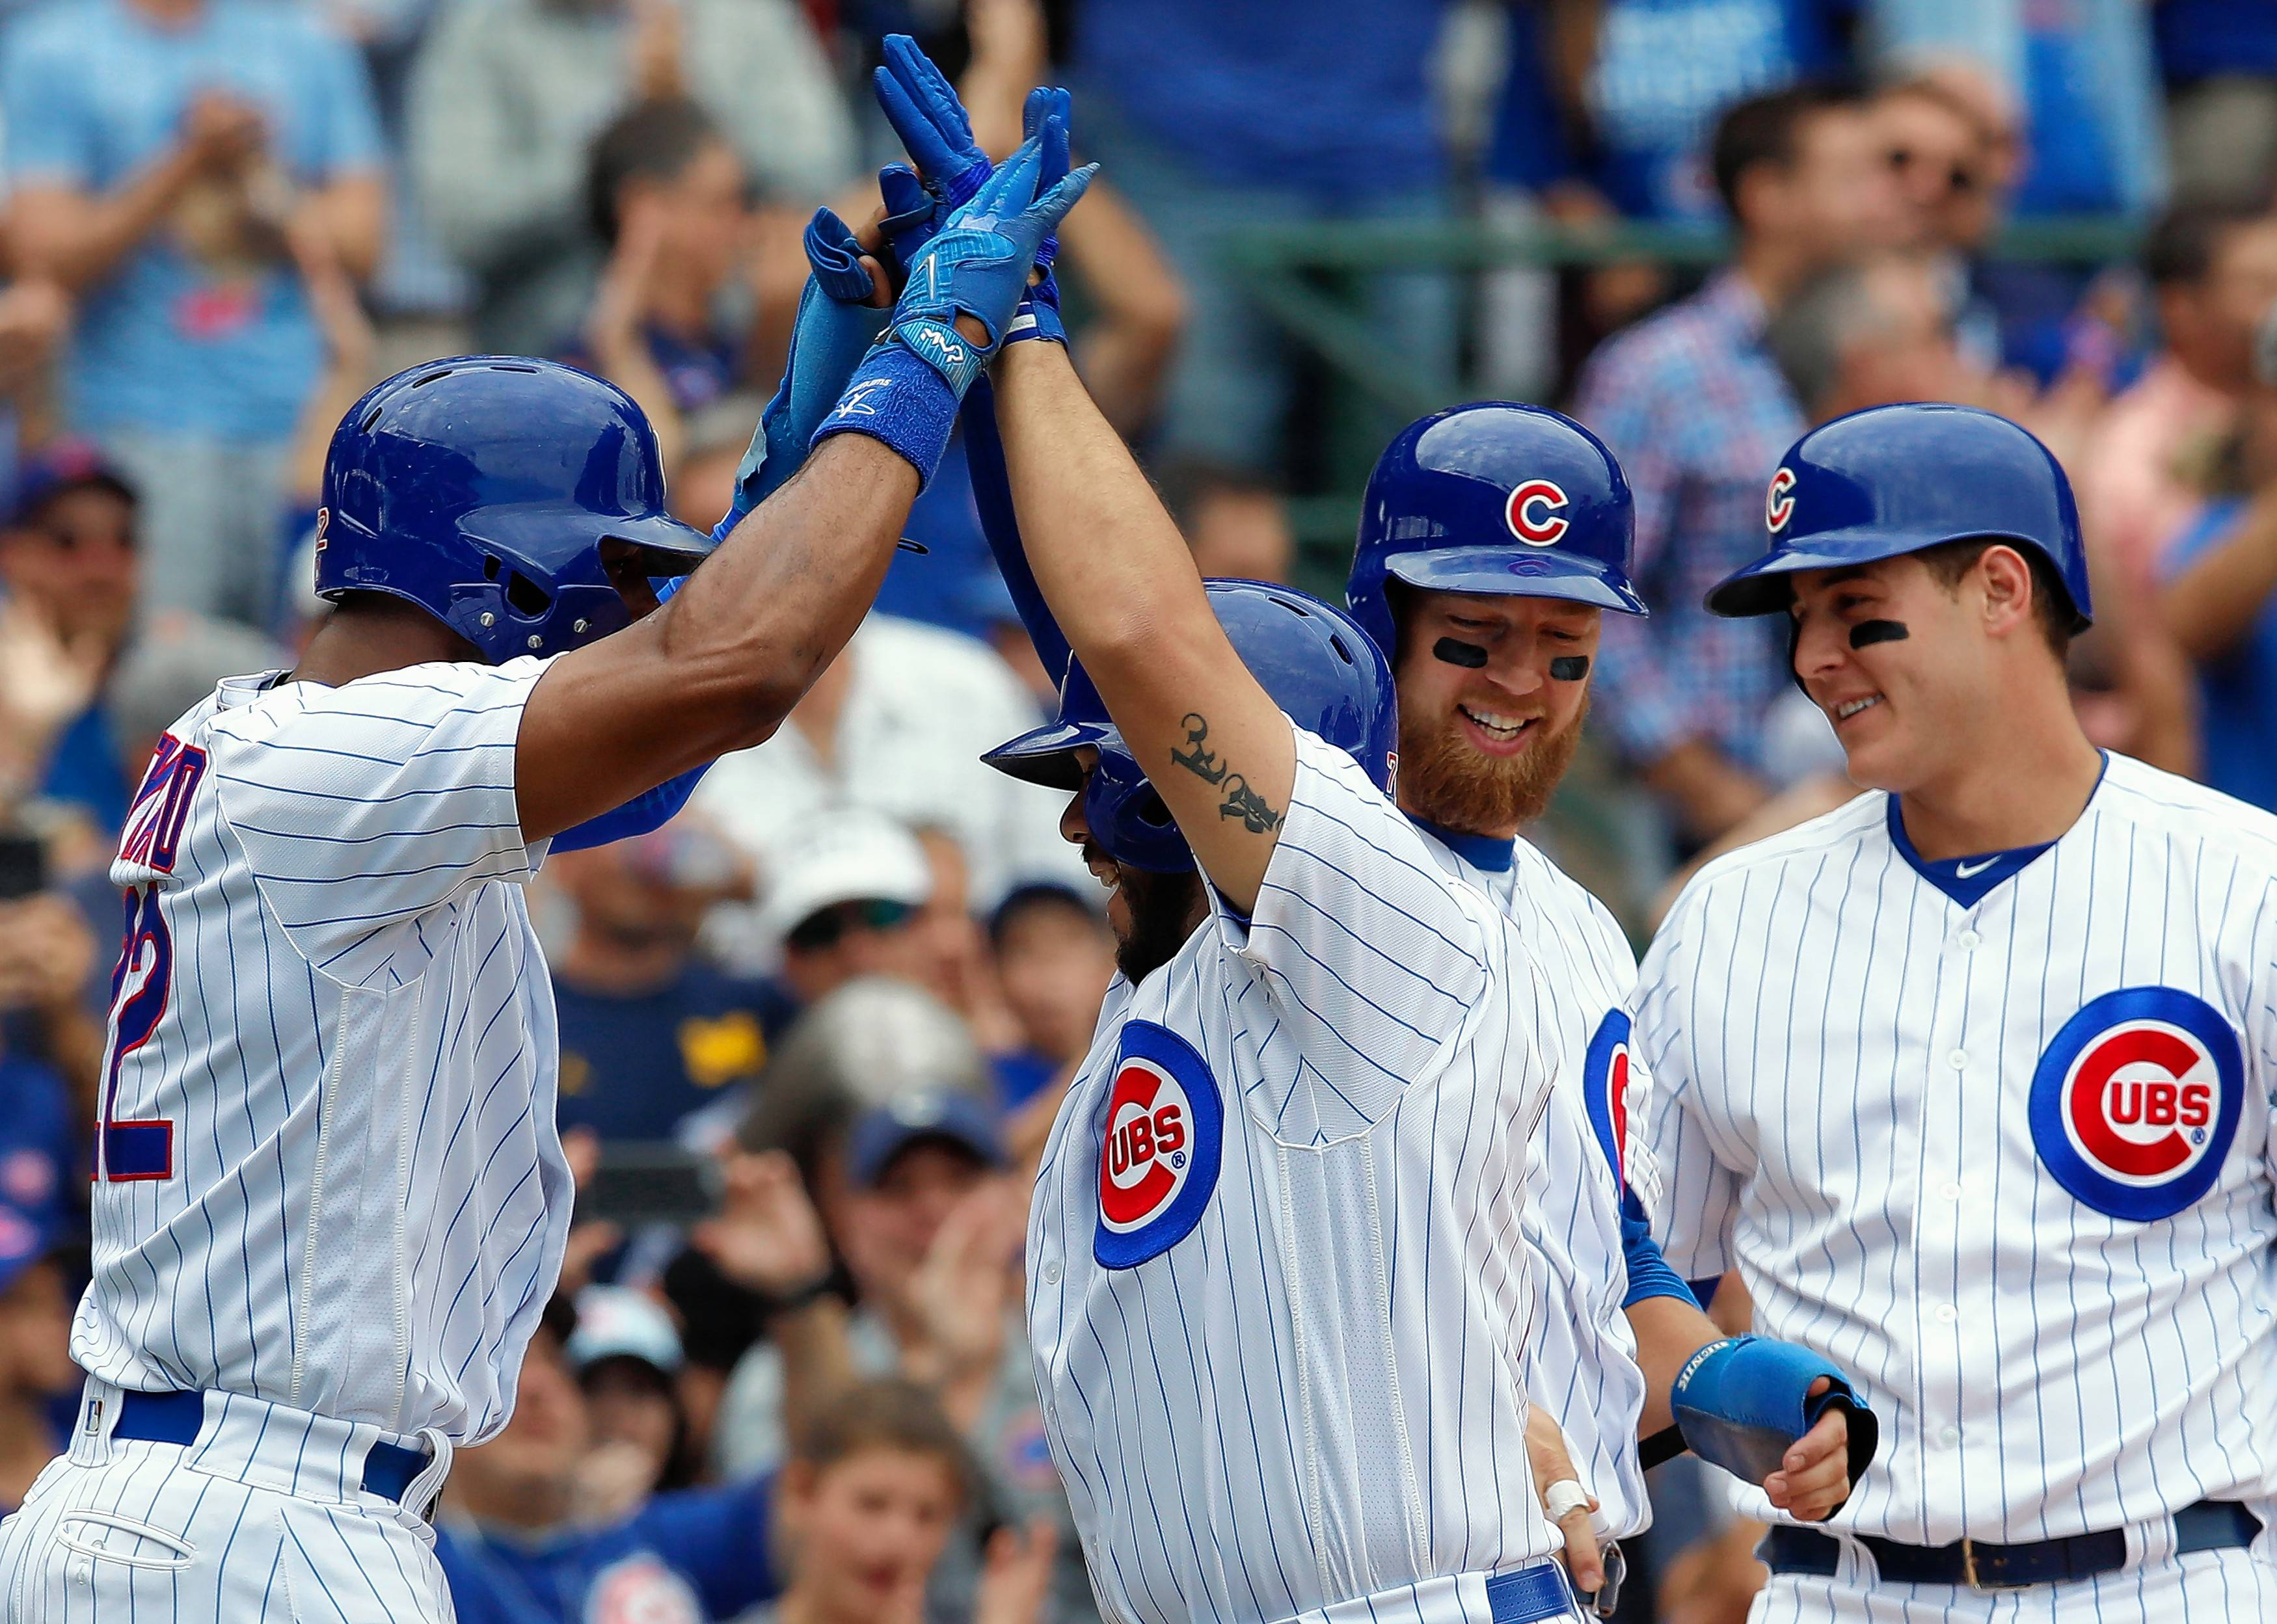 Chicago Cubs' Rene Rivera, second from left, celebrates his grand slam home run against the Atlanta Braves with teammates Jason Heyward, left, Ben Zobrist, second from right, and Anthony Rizzo during the second inning Saturday in Chicago.